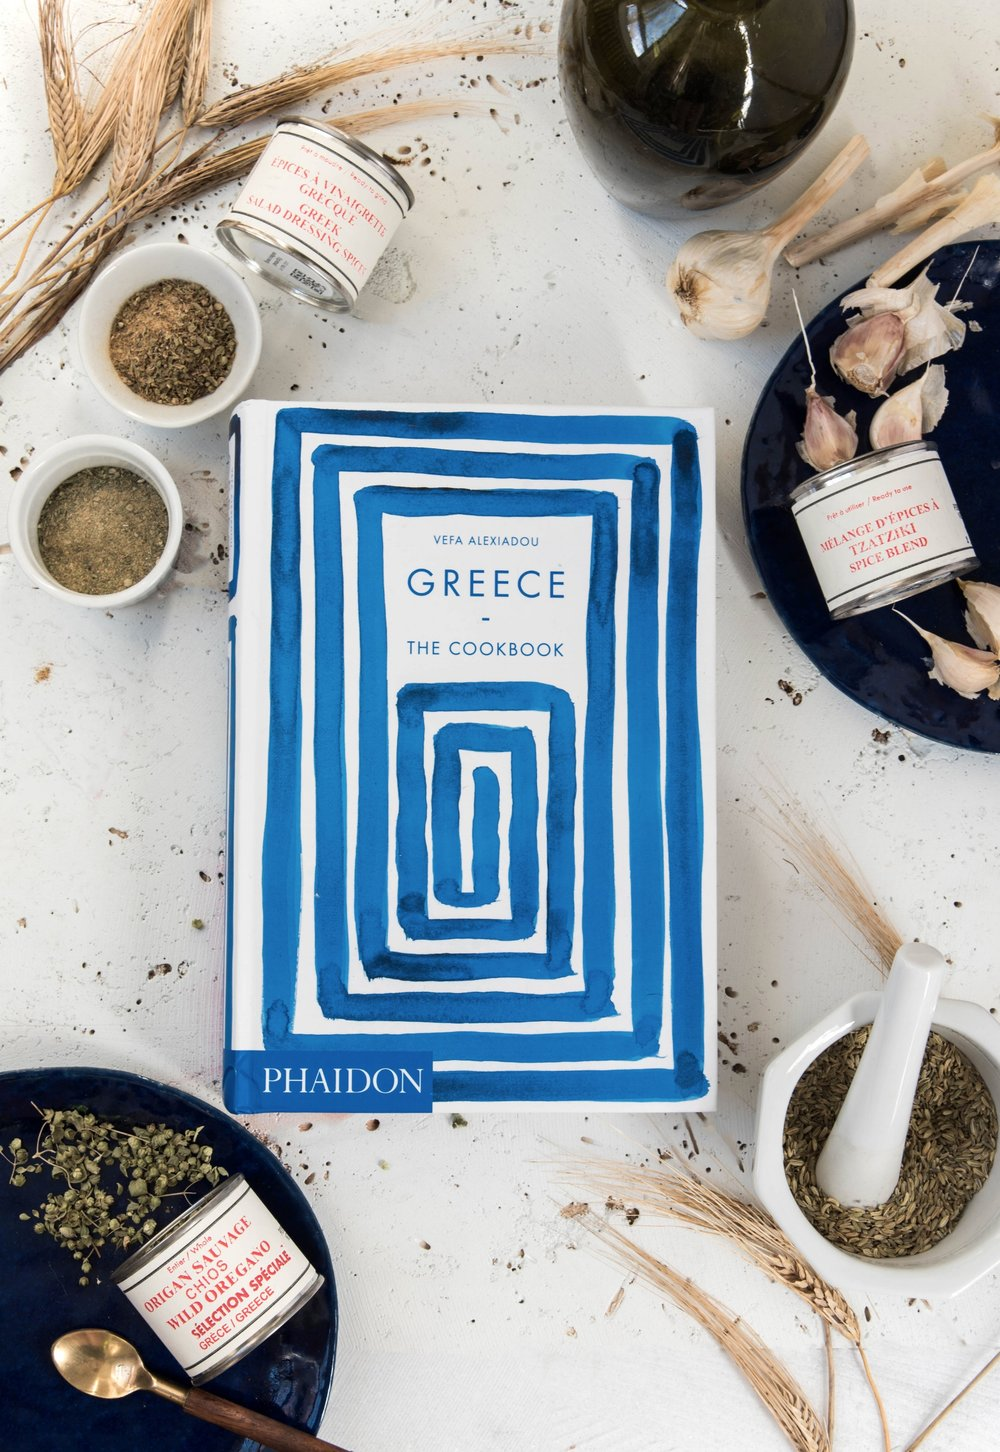 ROSE & IVY Journal Celebrate the Season Gift Guide Transport them to Greece